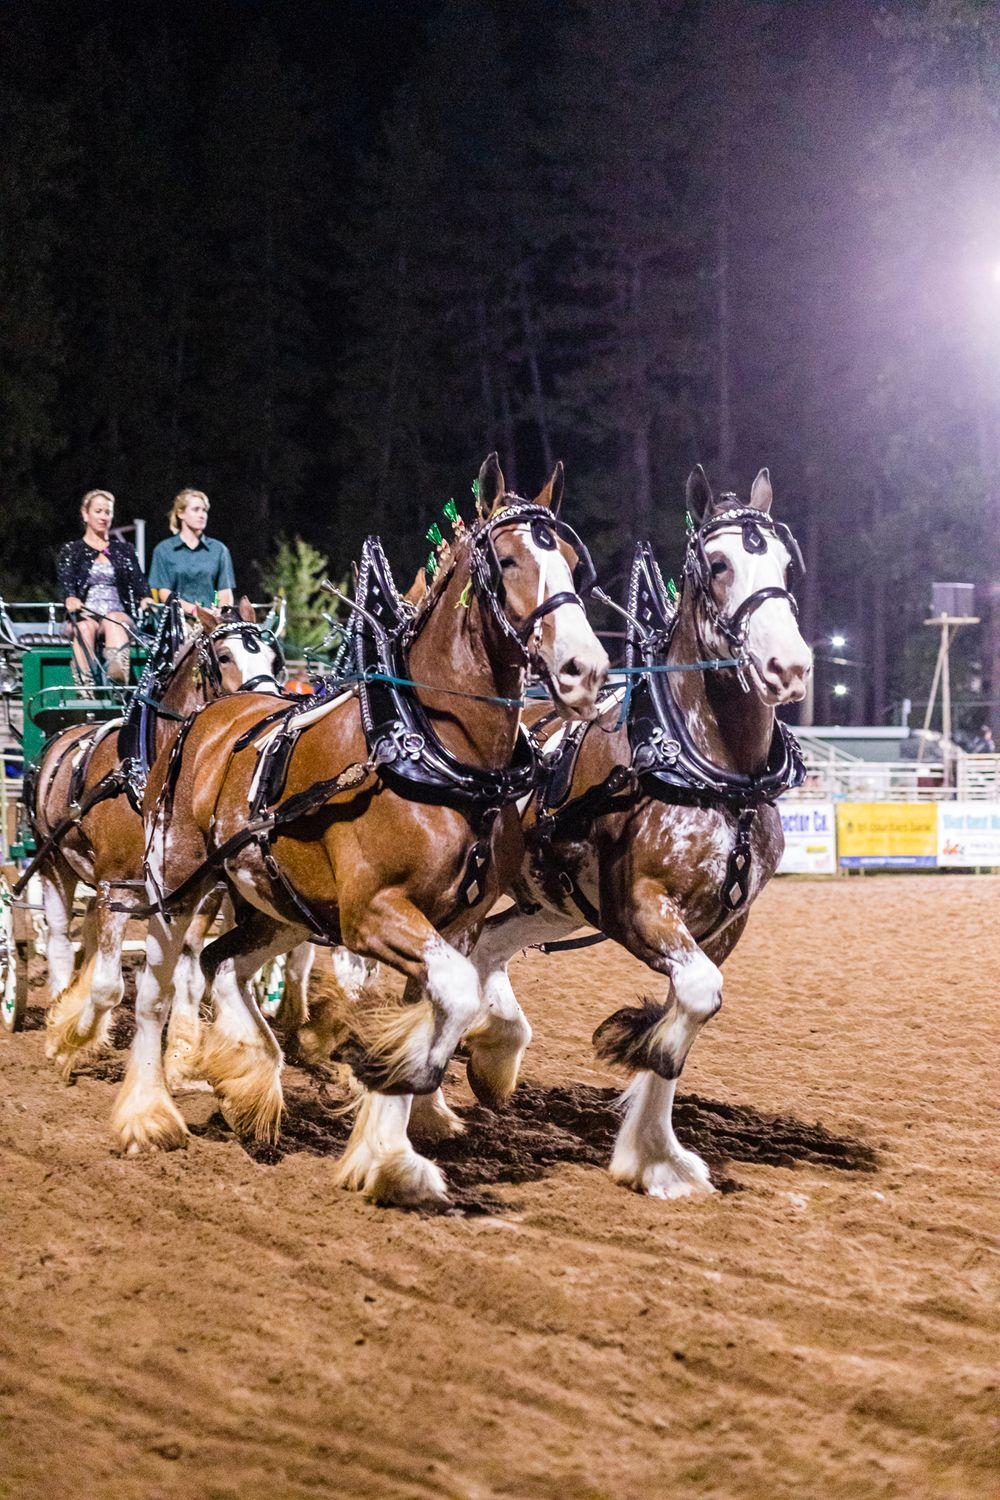 Draft Horse Classic at the Nevada County Fairgrounds |Lenkaland Photography